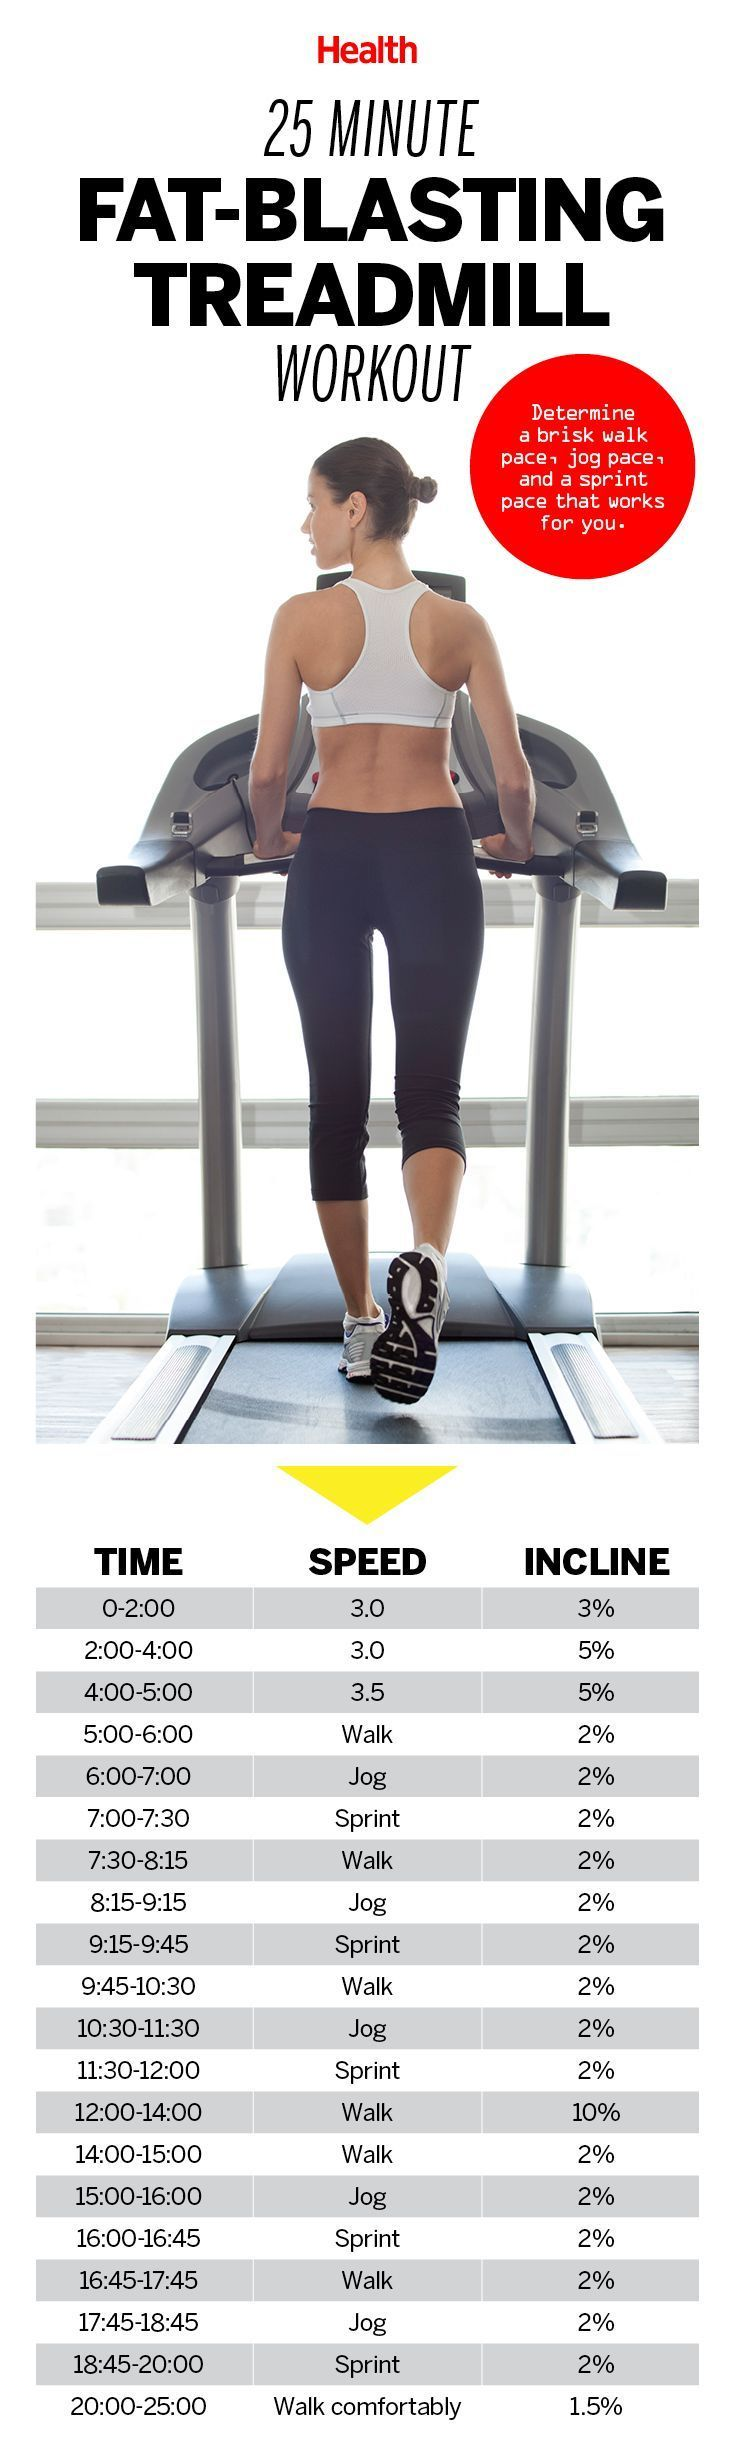 This is the best plan for a home workout, with FREE WEEKENDS and no Equipment!